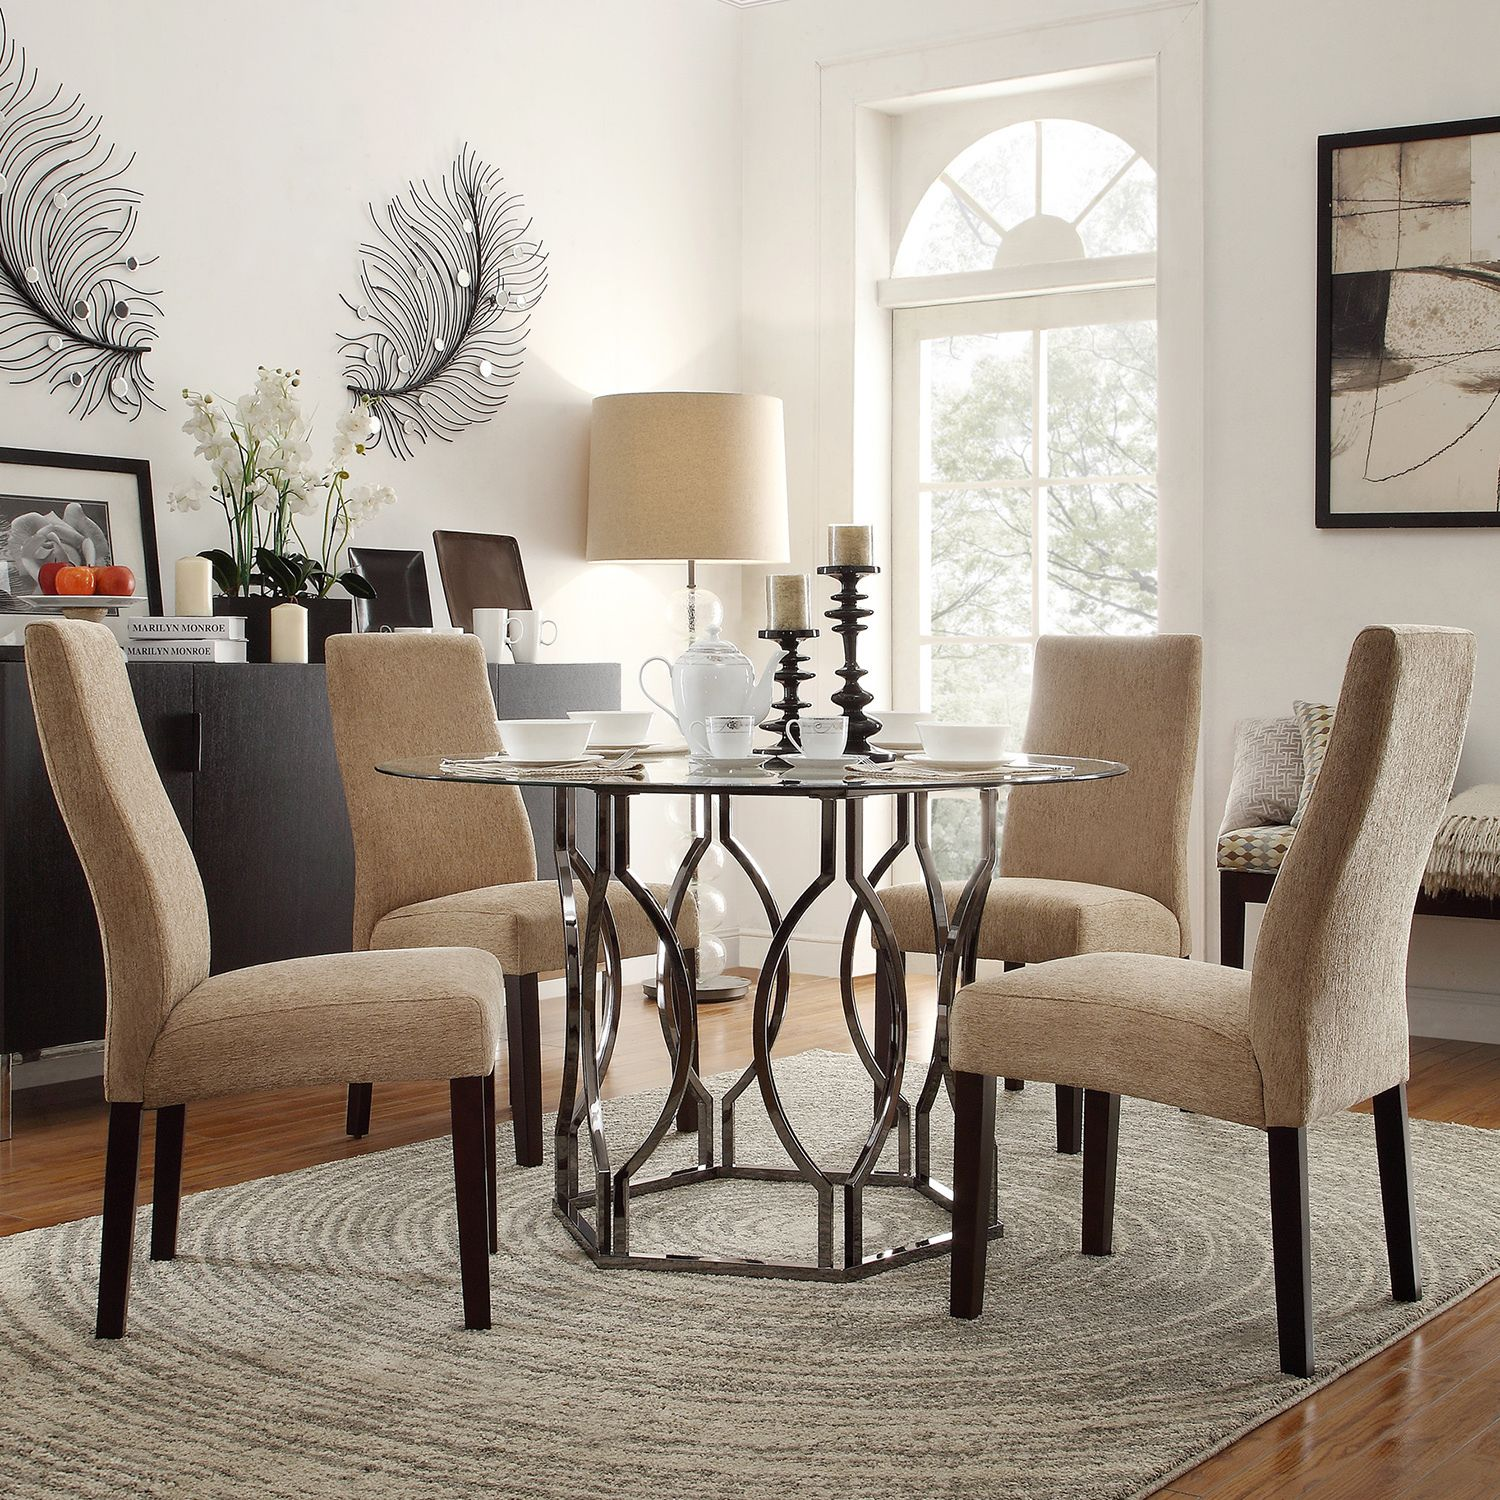 Enhance your modern dining room decor with the Kona 5-piece dining set. The